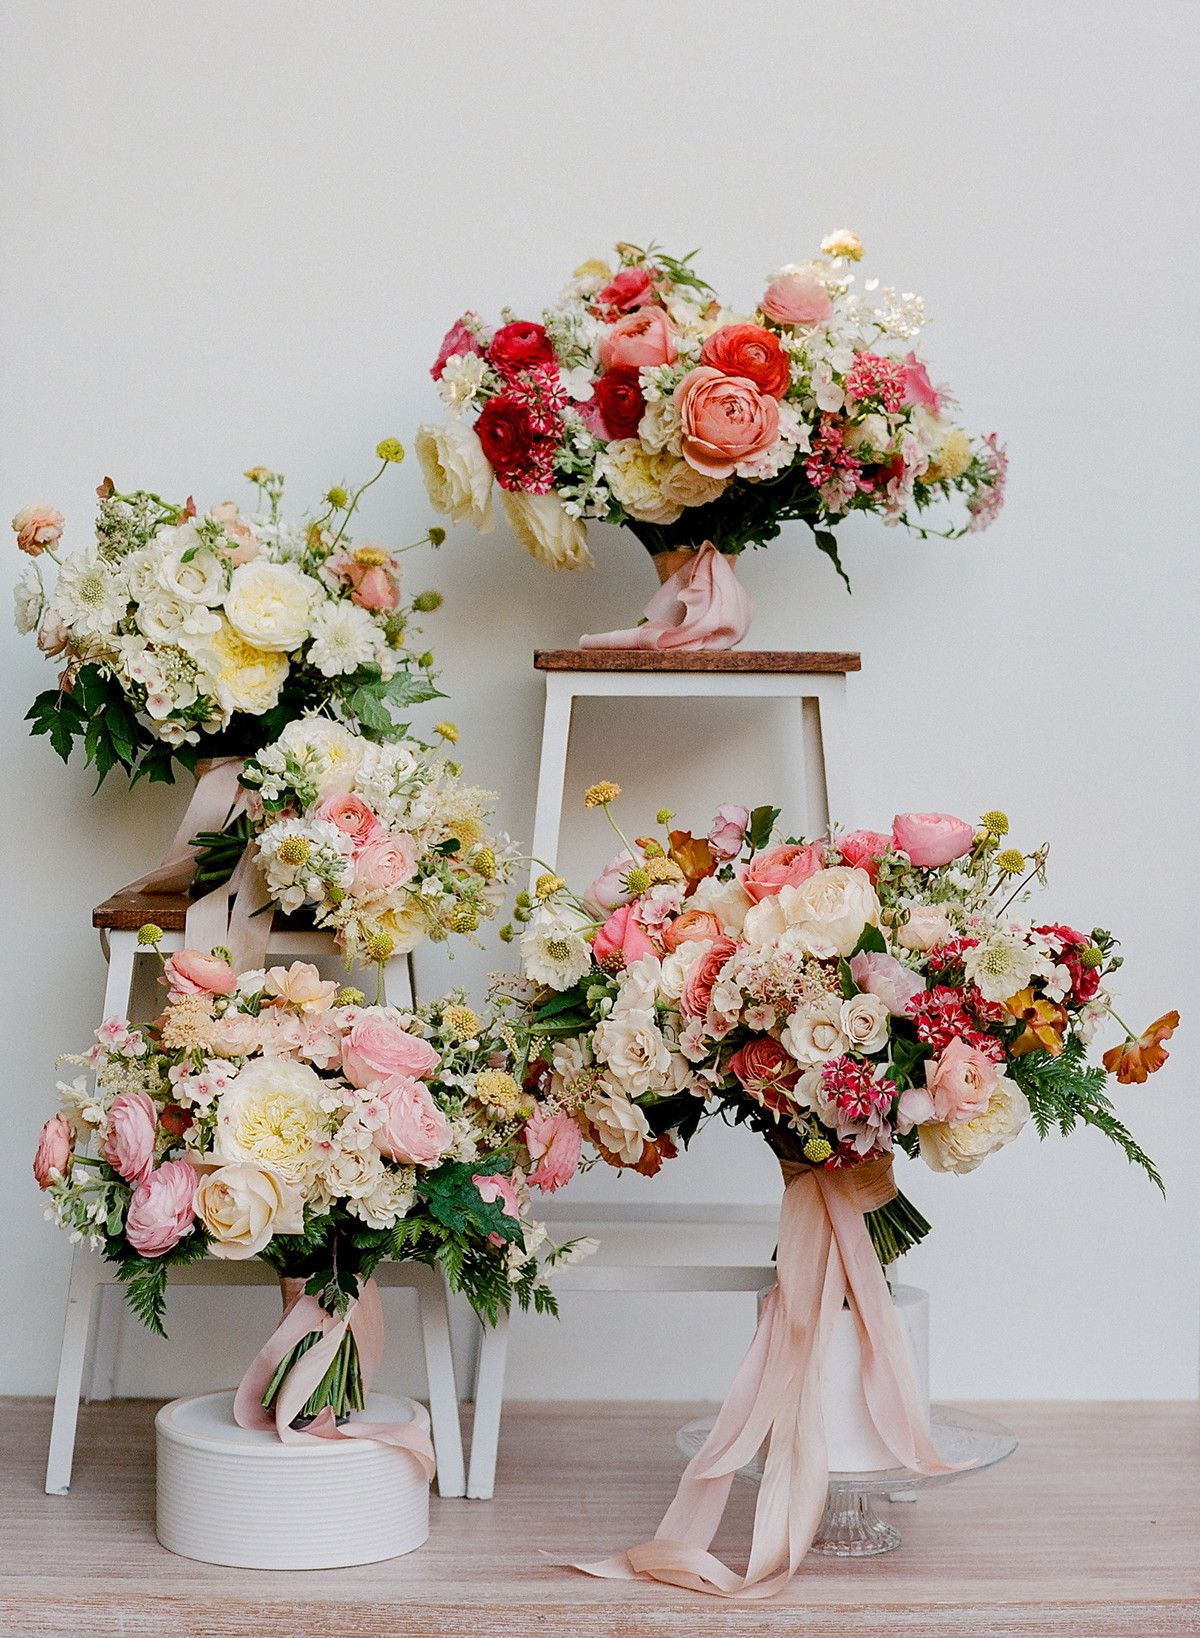 Rose Wedding Bouquets for Every Budget—from 100 to 500